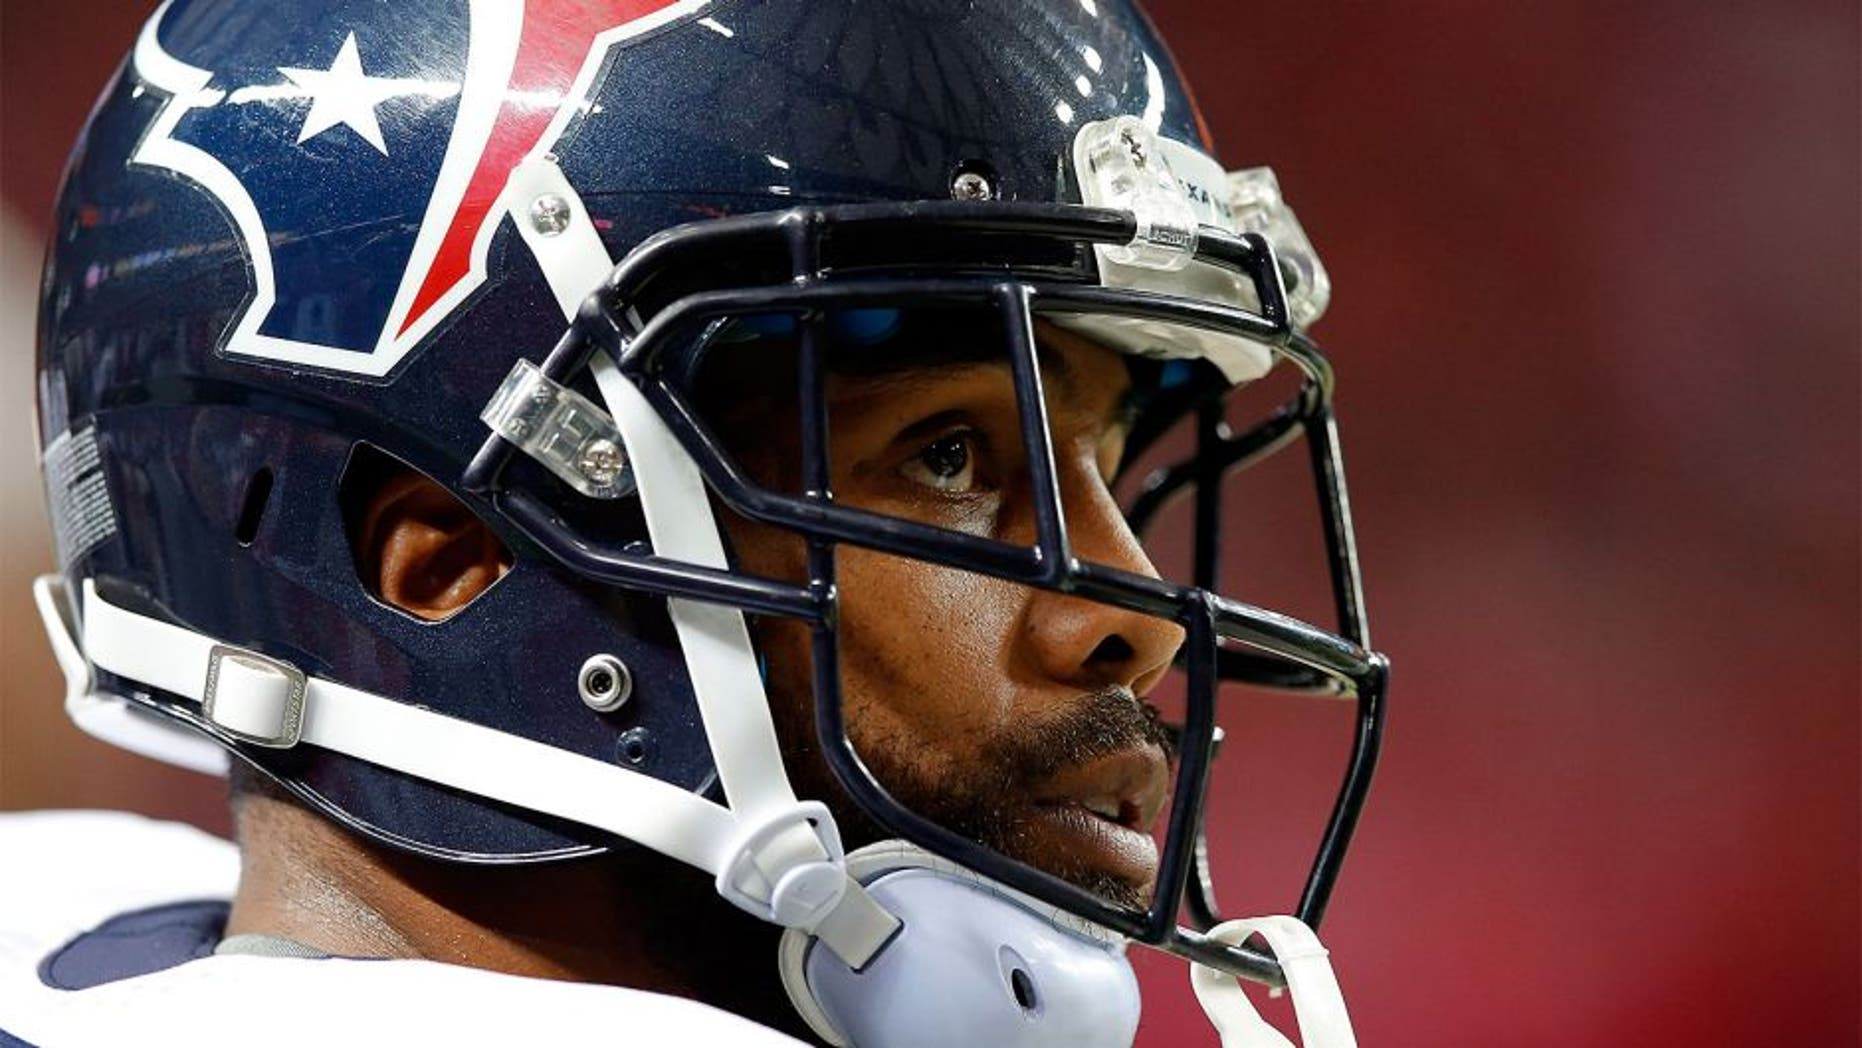 ATLANTA, GA - OCTOBER 04: Arian Foster #23 of the Houston Texans looks on from the sideline in the first half against the Atlanta Falcons at the Georgia Dome on October 4, 2015 in Atlanta, Georgia. (Photo by Kevin C. Cox/Getty Images)